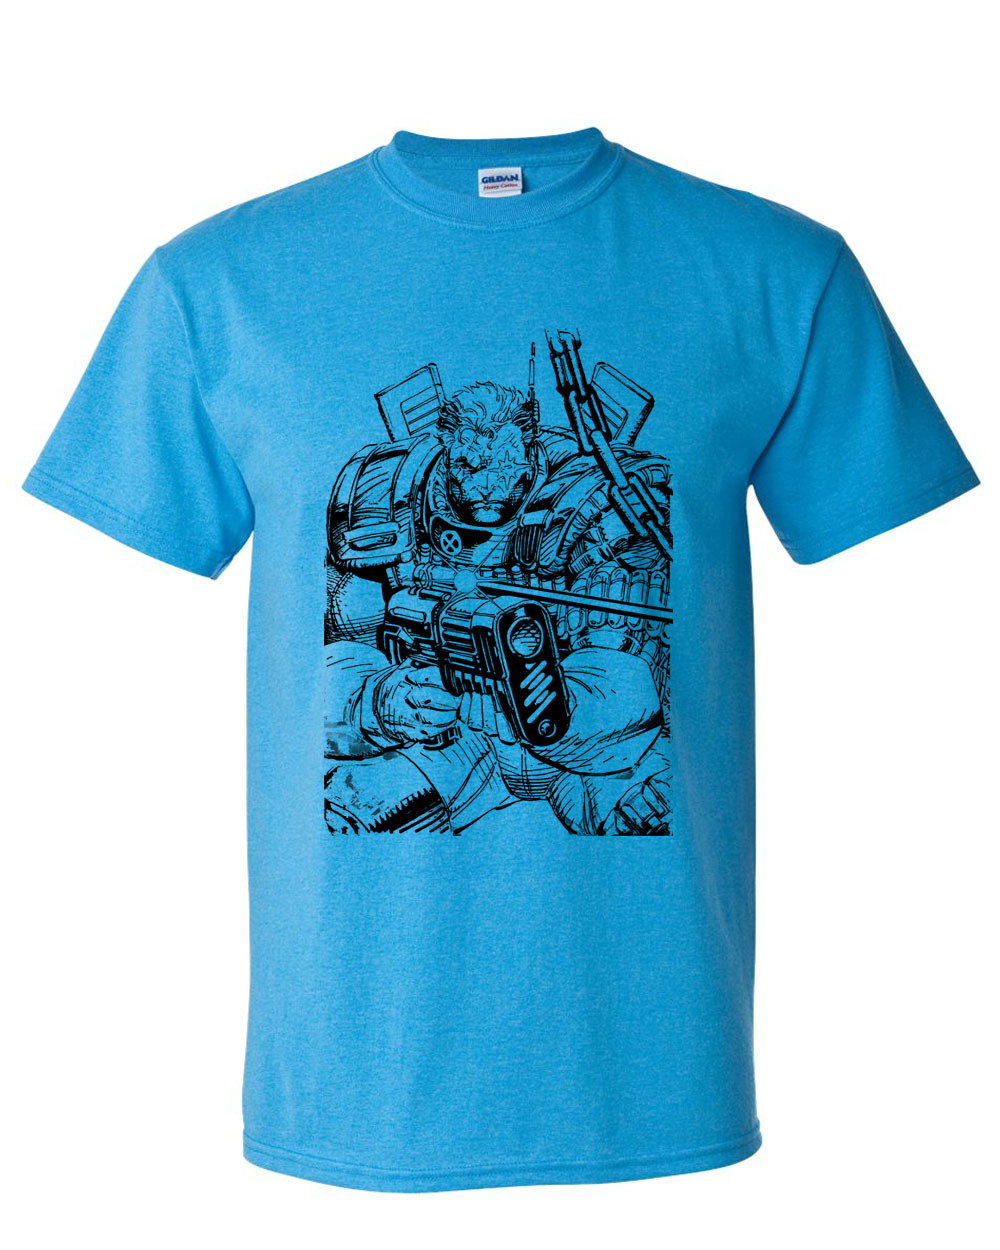 Cable marvel x force retro vintage x men t shirt for sale online graphic tee shirt store